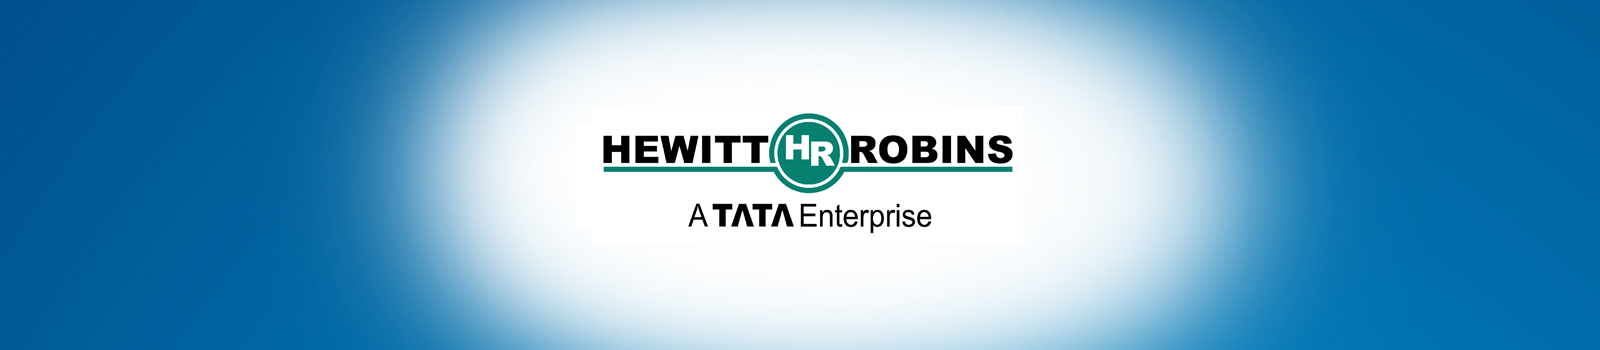 Hewitt Robins International Limited